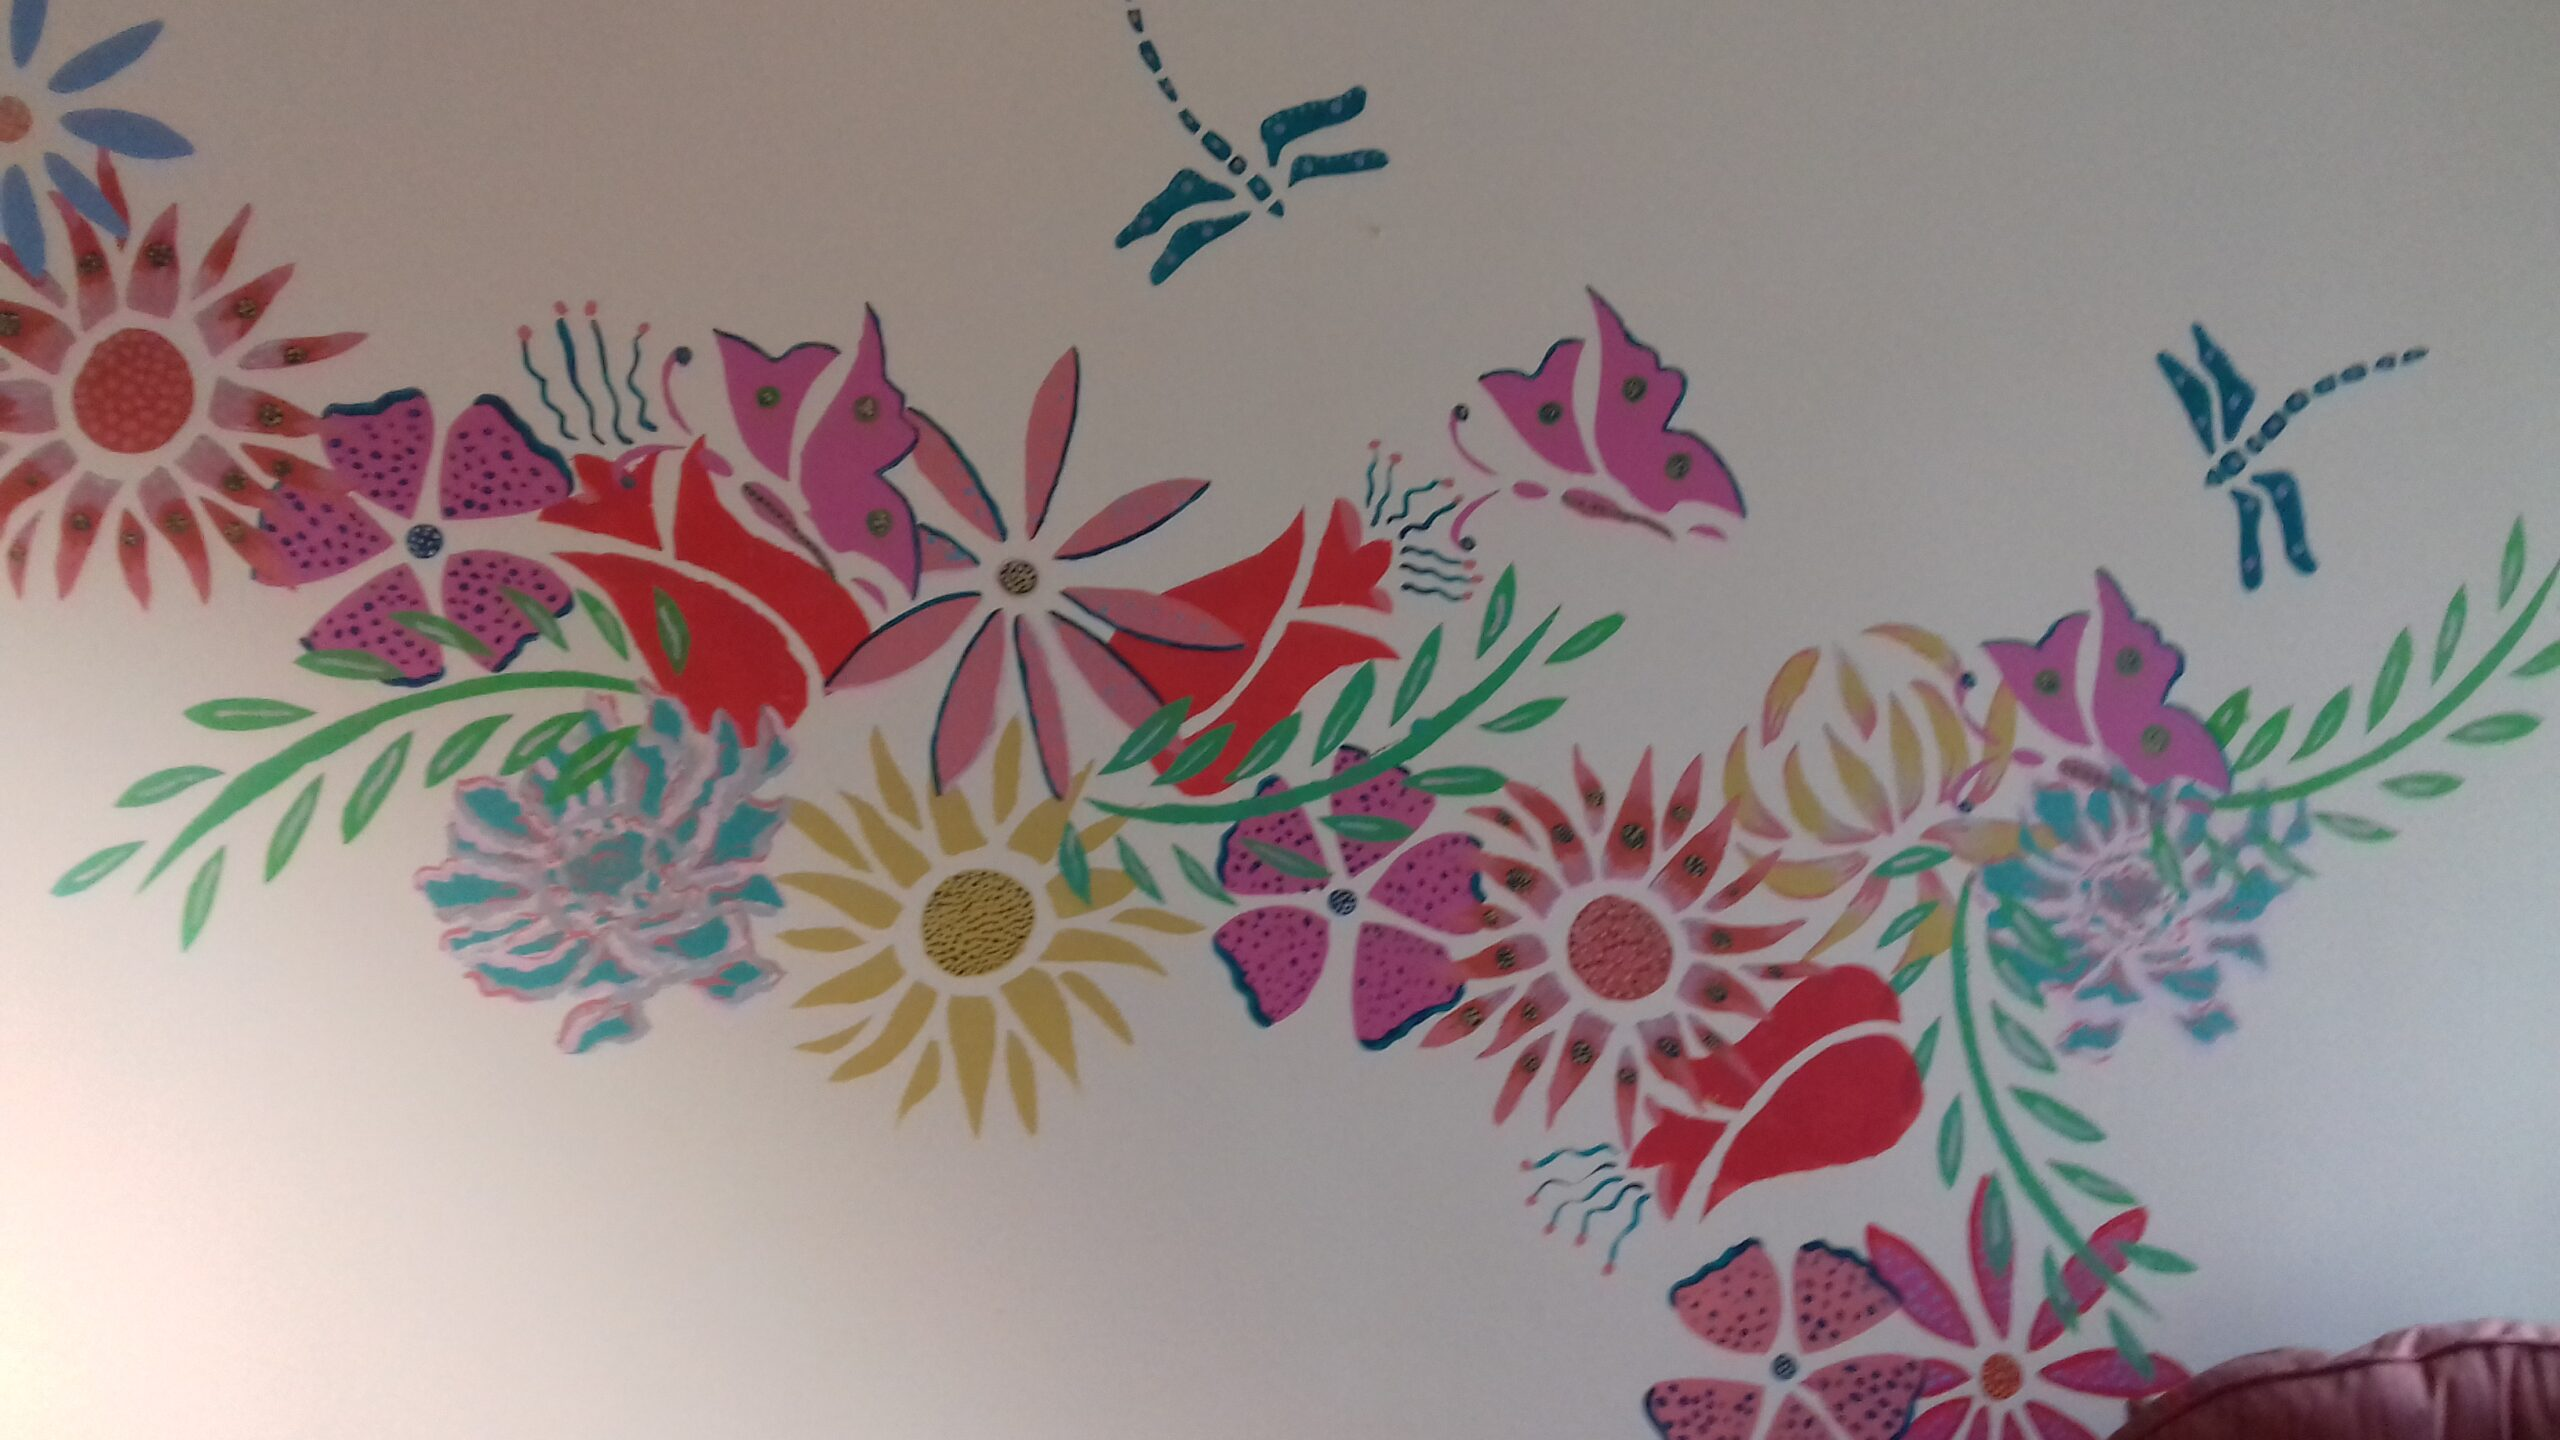 Mural_at_Trafford_House_1